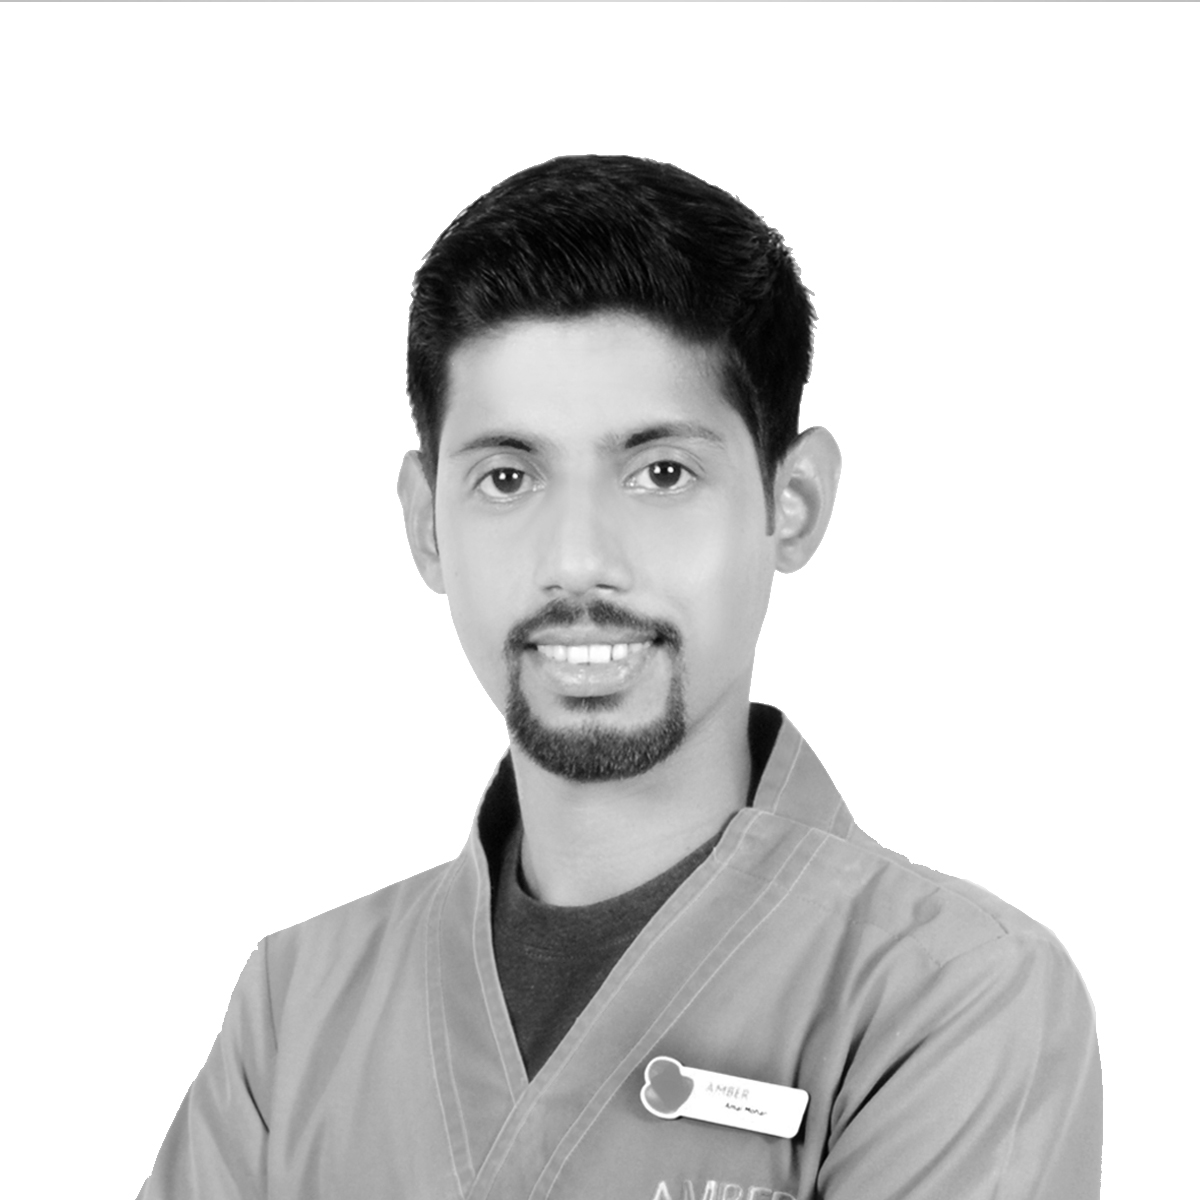 Cardiology specialist in Deira